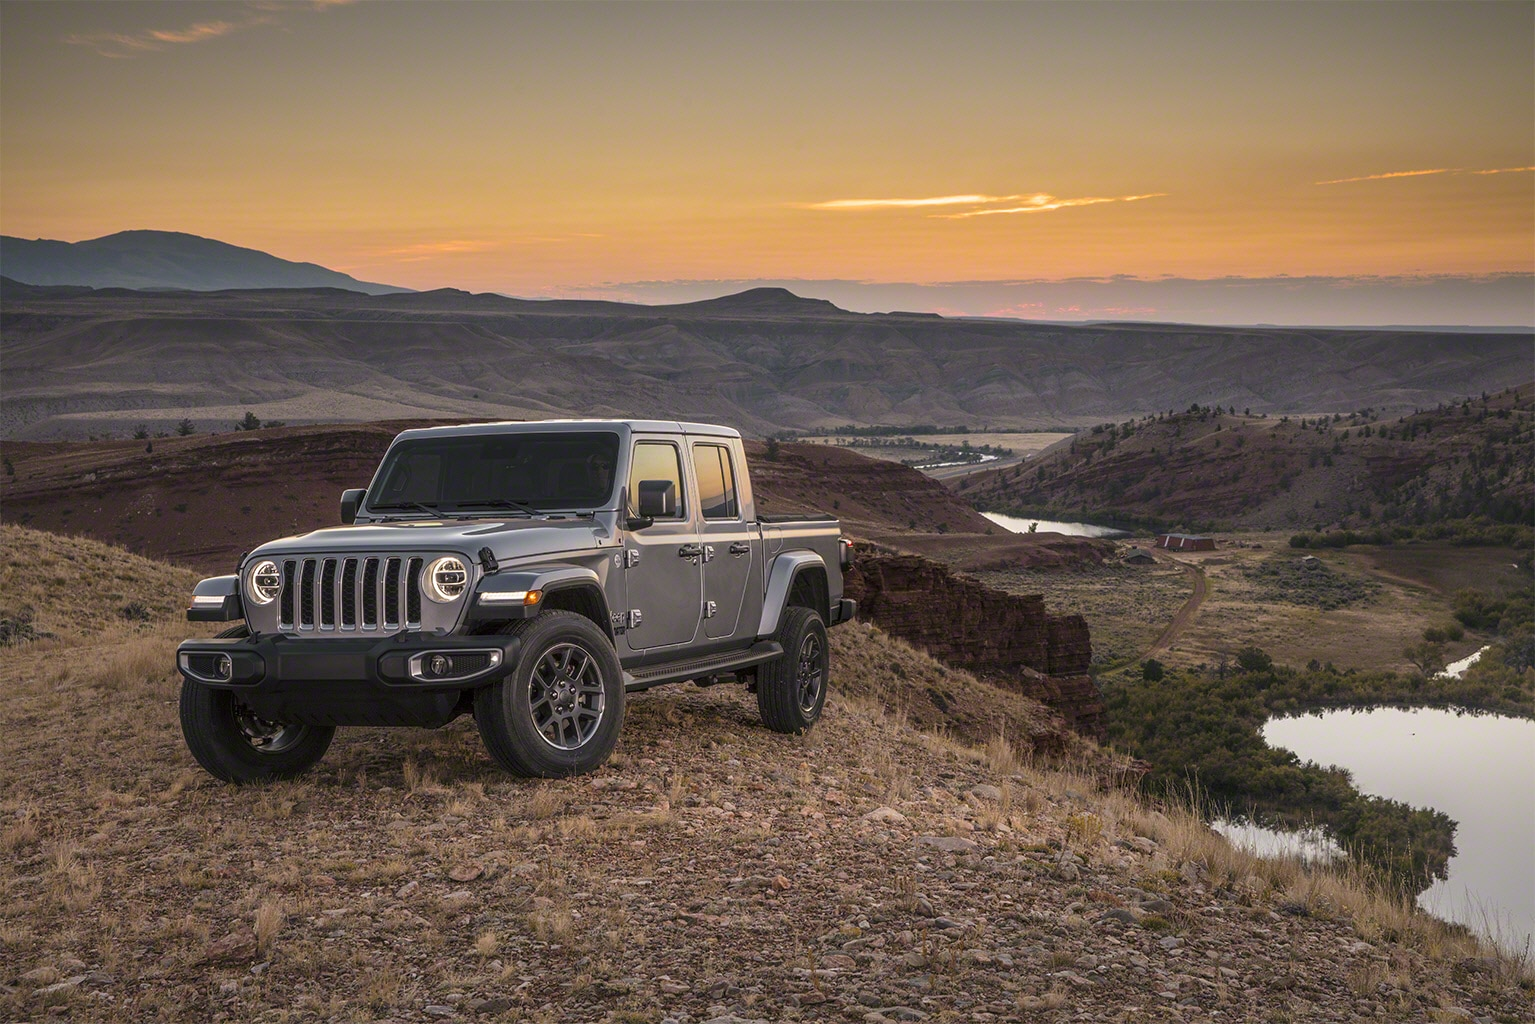 2020 Jeep Gladiator Pickup Arrives: Here Are The Official